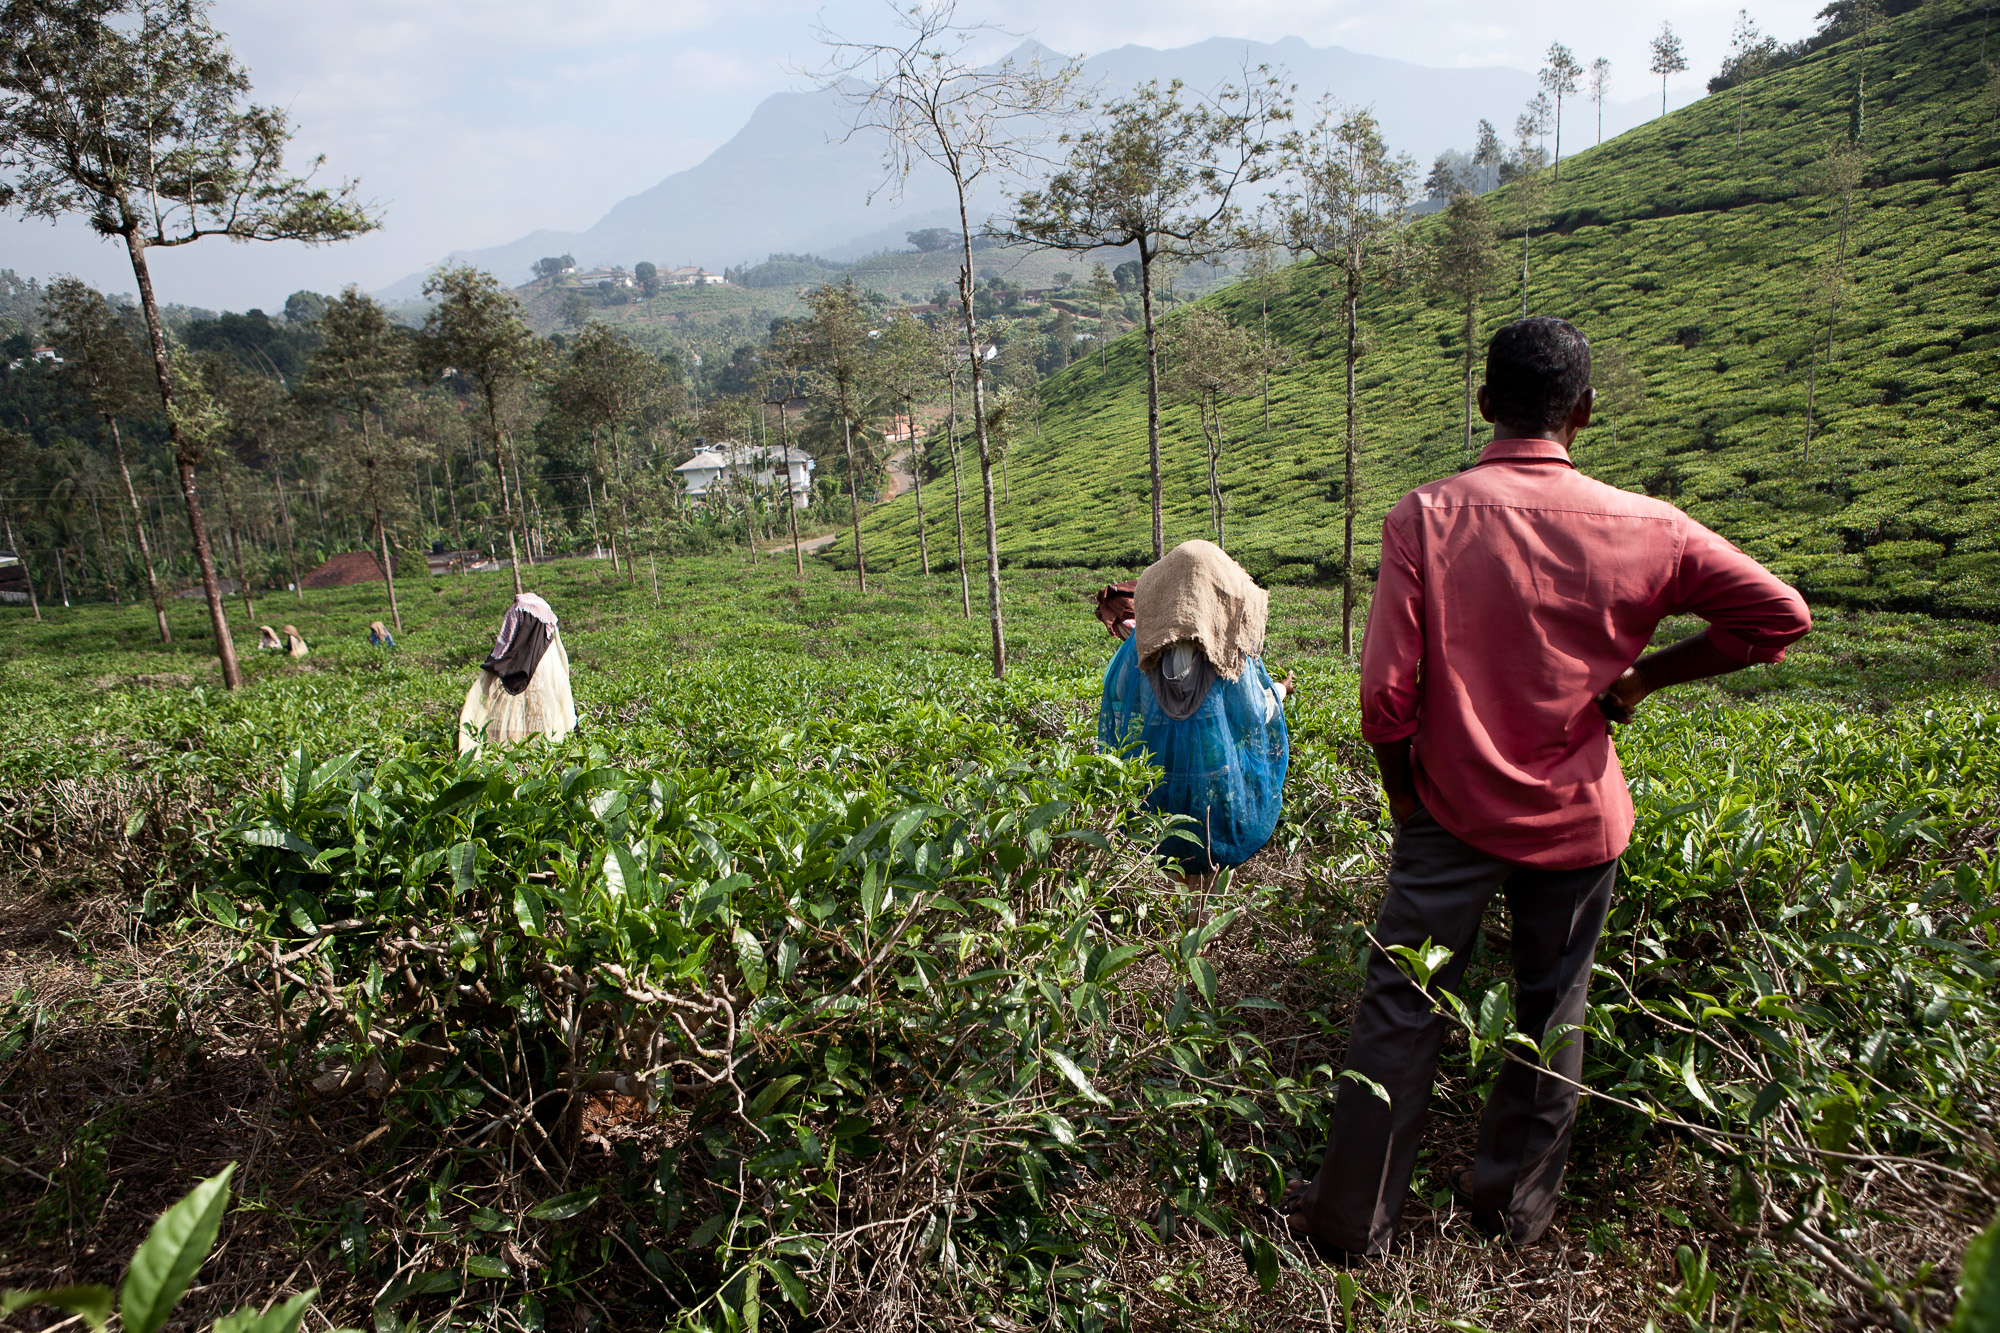 A male field watcher oversees the work of the women tea puckers, weighing in the sacks of leaf both late morning and evening before collection to ensure the women are meeting their daily quota.  Although women comprise of over half the workforce on tea estates, there is still a sizable disparity between their numbers and those holding managerial positions.